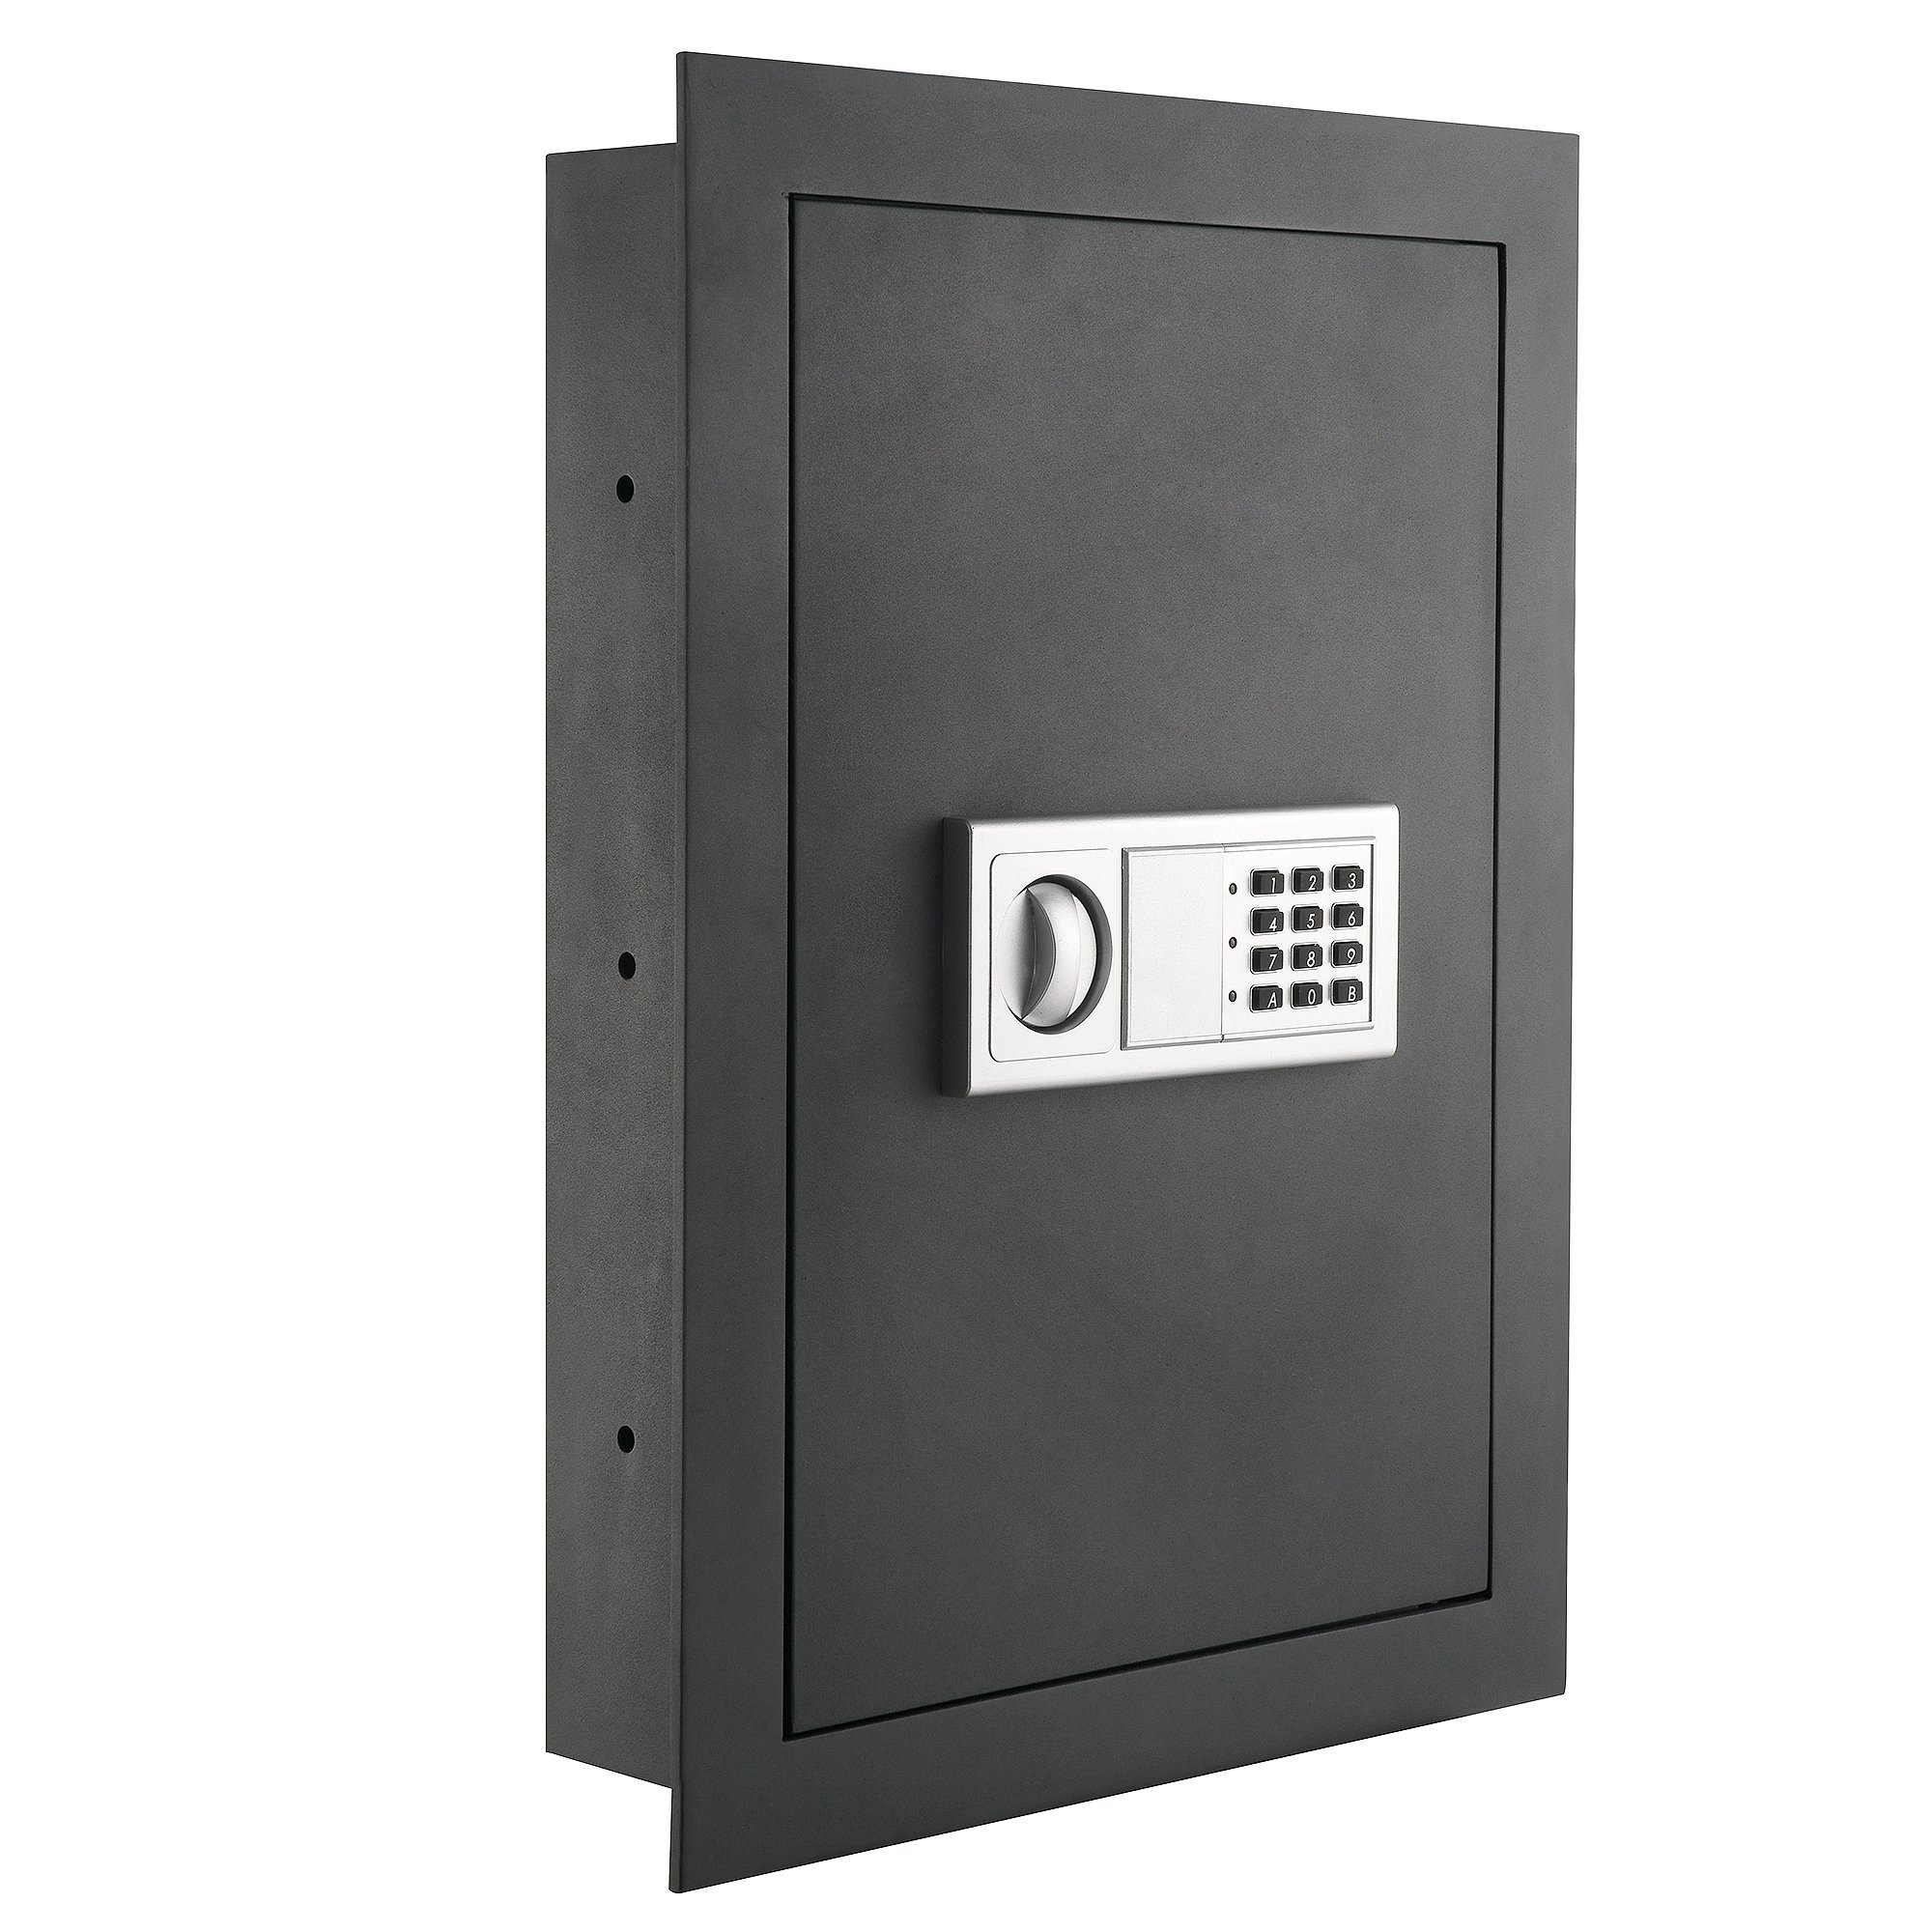 7725 Flat Electronic Wall Safe For Jewelry Security - Paragon Lock & Safe by Paragon Lock and Safe